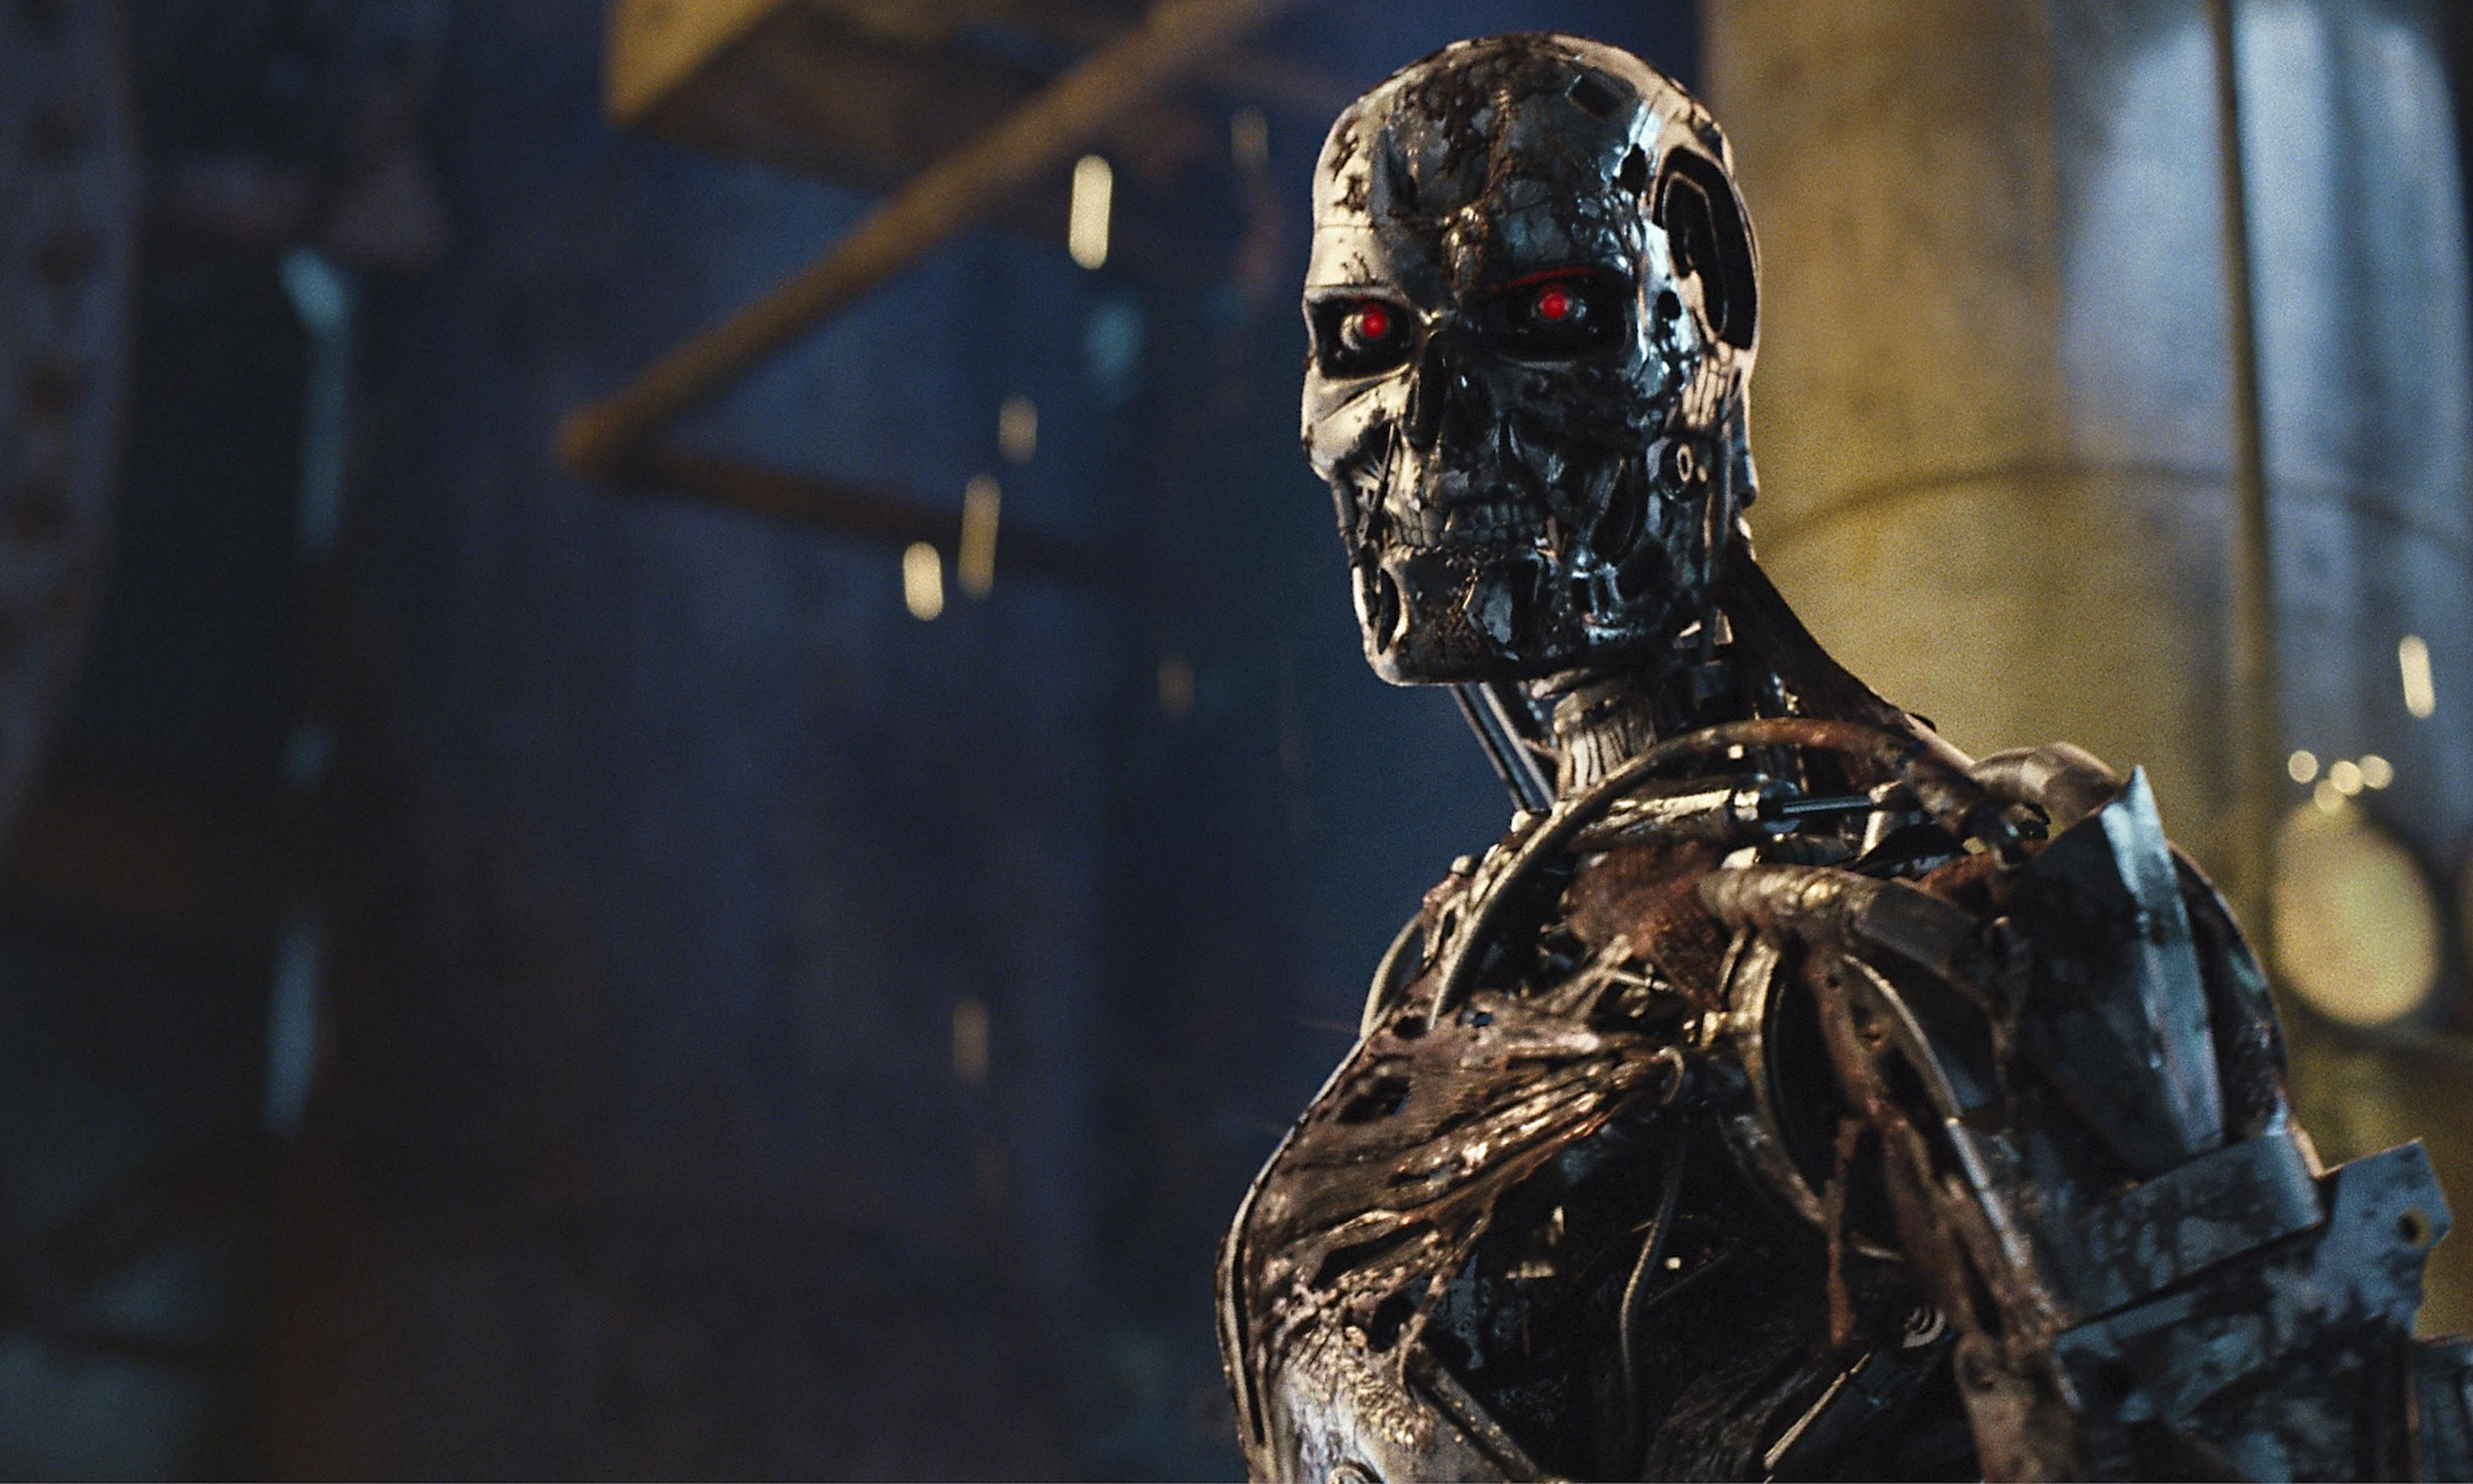 Killer robots: why do so many people think they are a good idea?